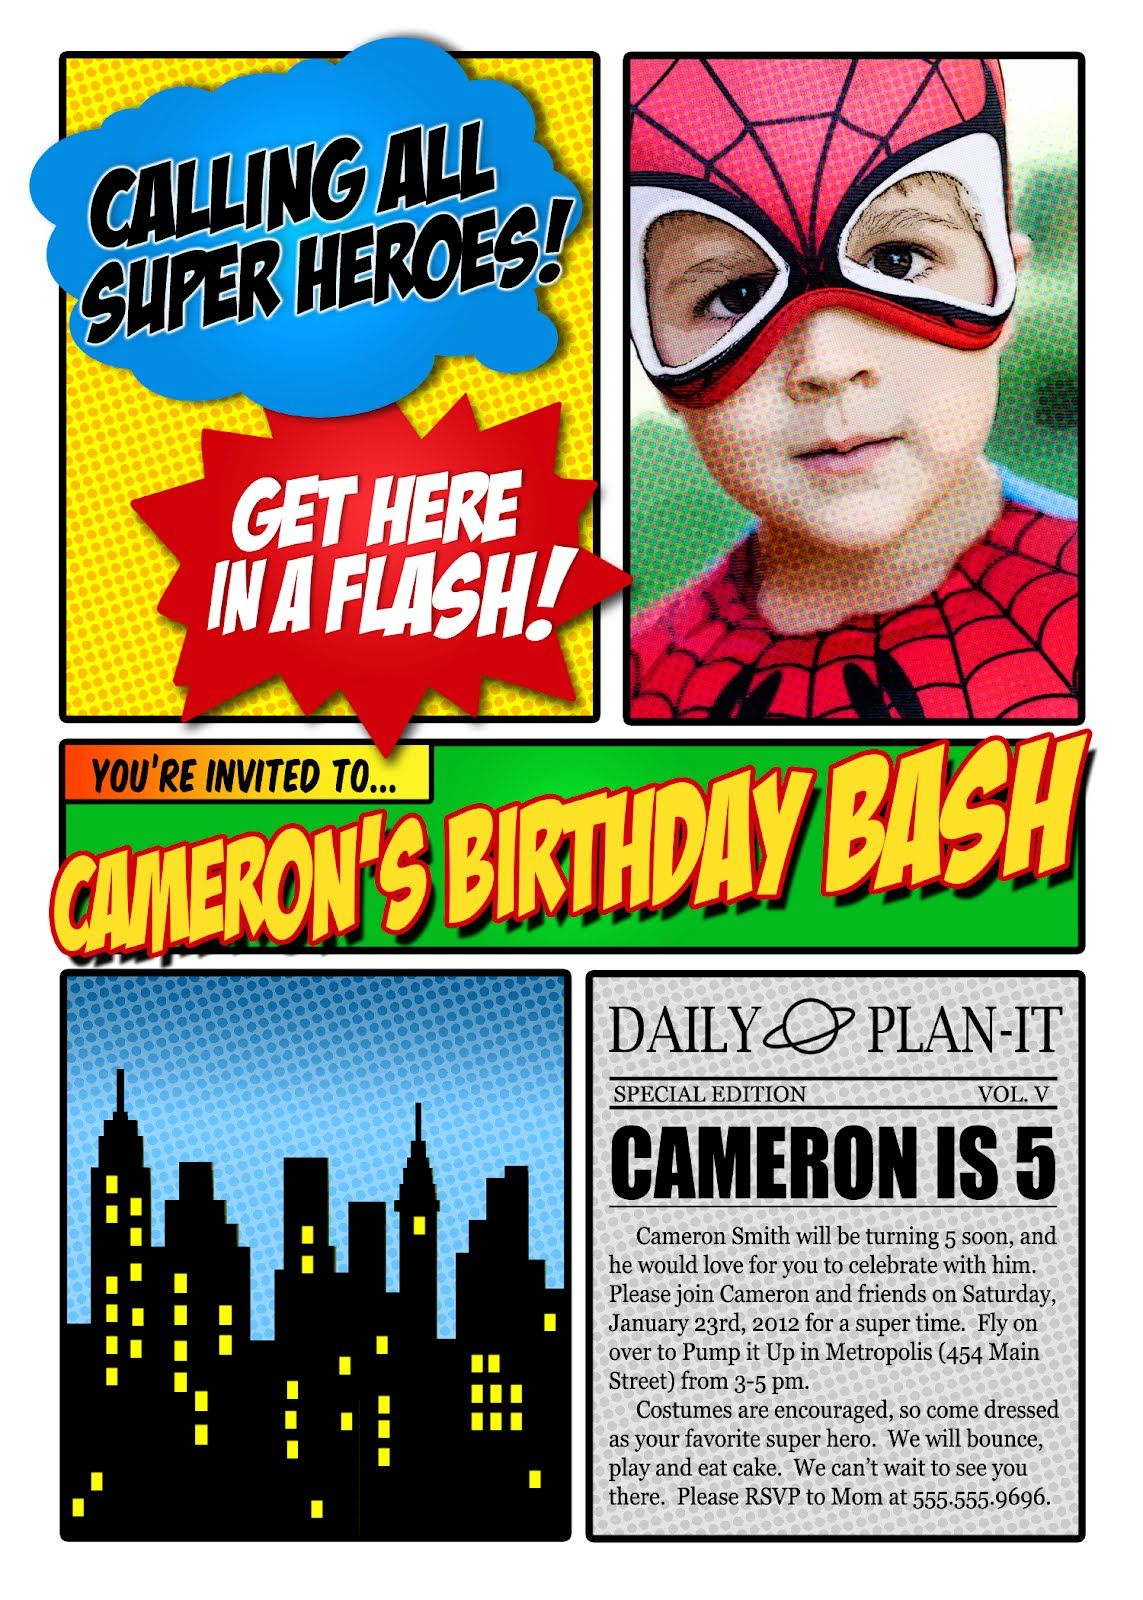 Free Spiderman Invitation Template Visit to grab an amazing super